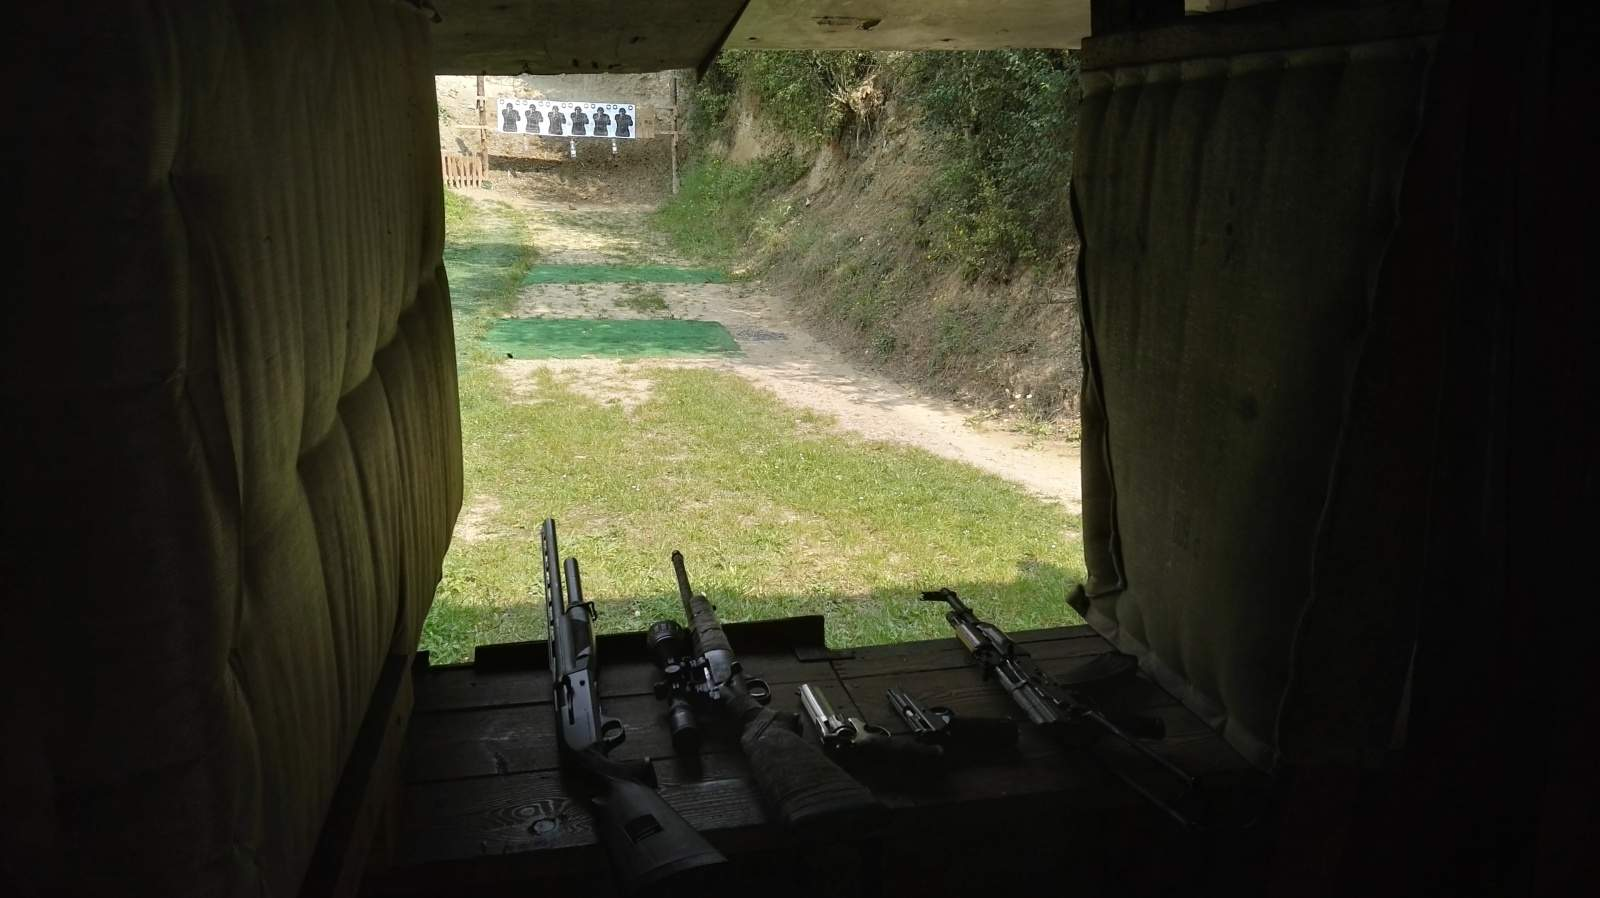 Bysice shooting range